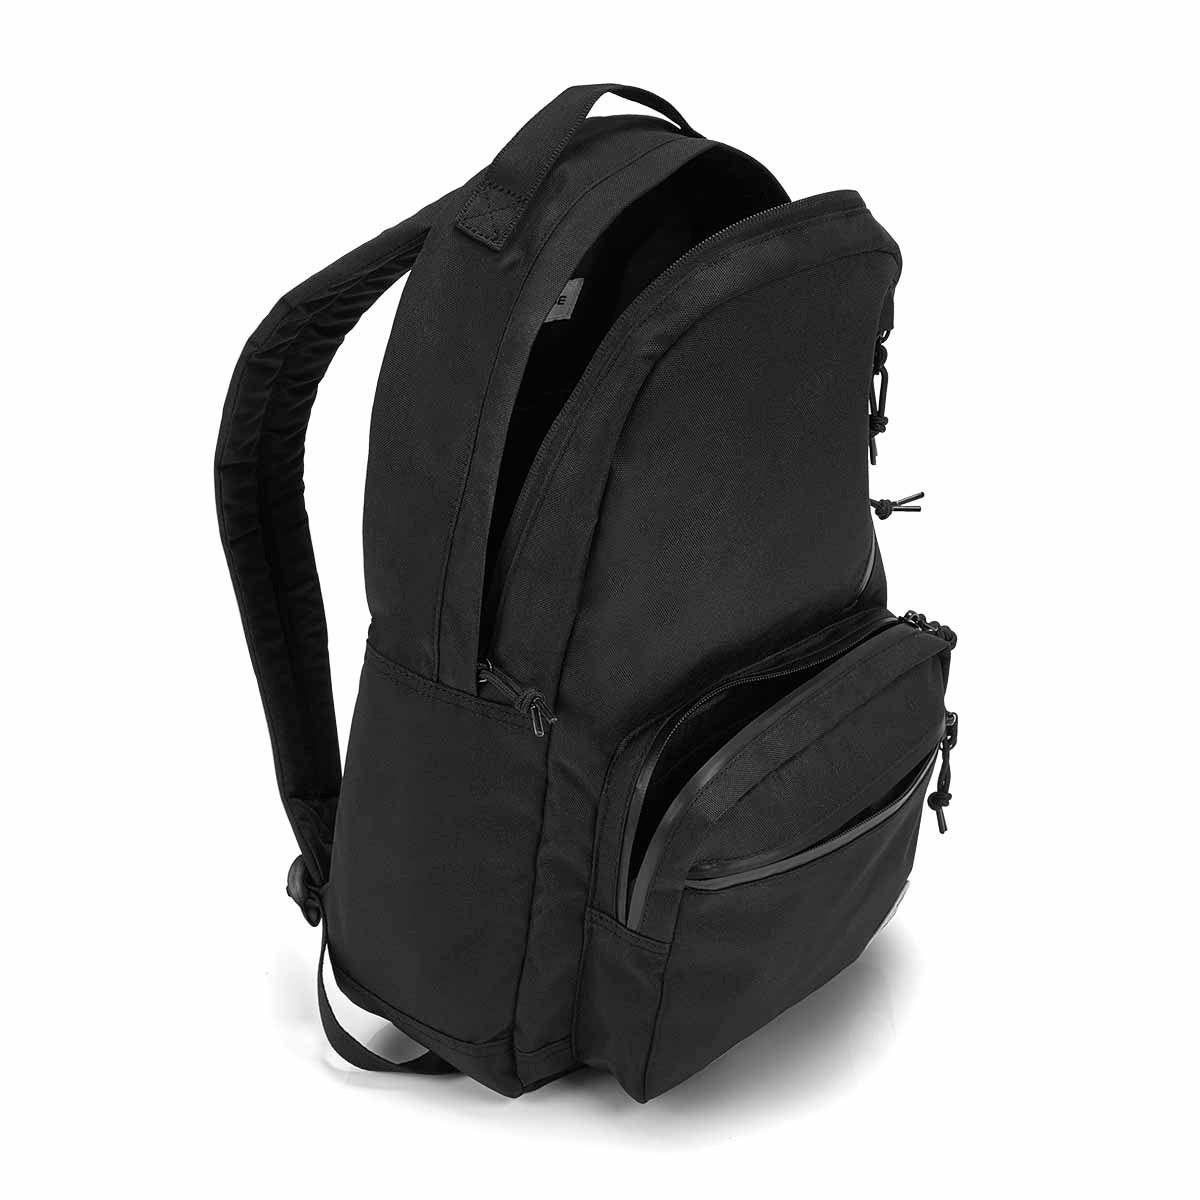 Unisex The GO black backpack